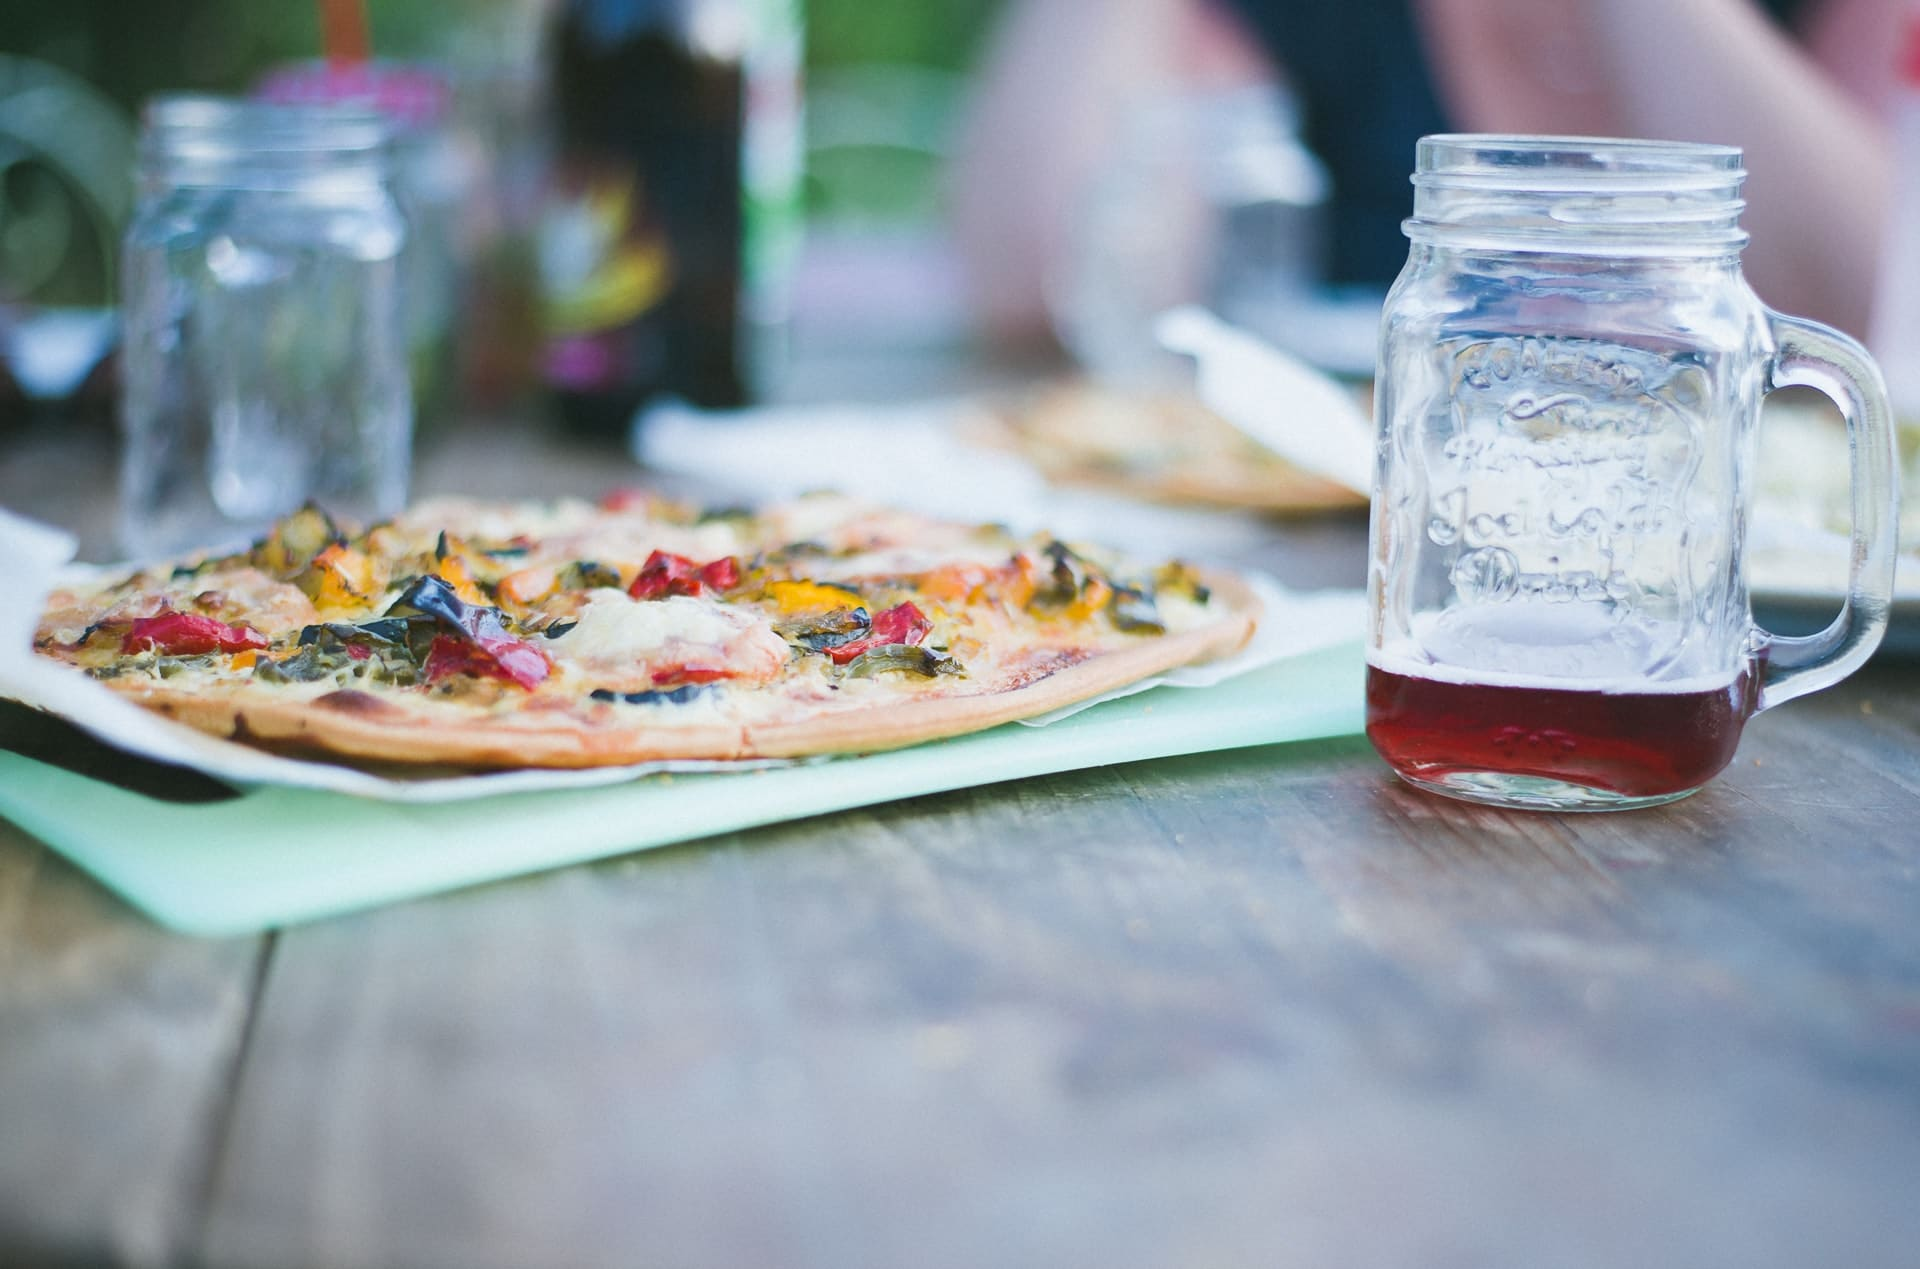 Throw a Backyard Make Your Own Pizza Party via @mermaidsandmojitos